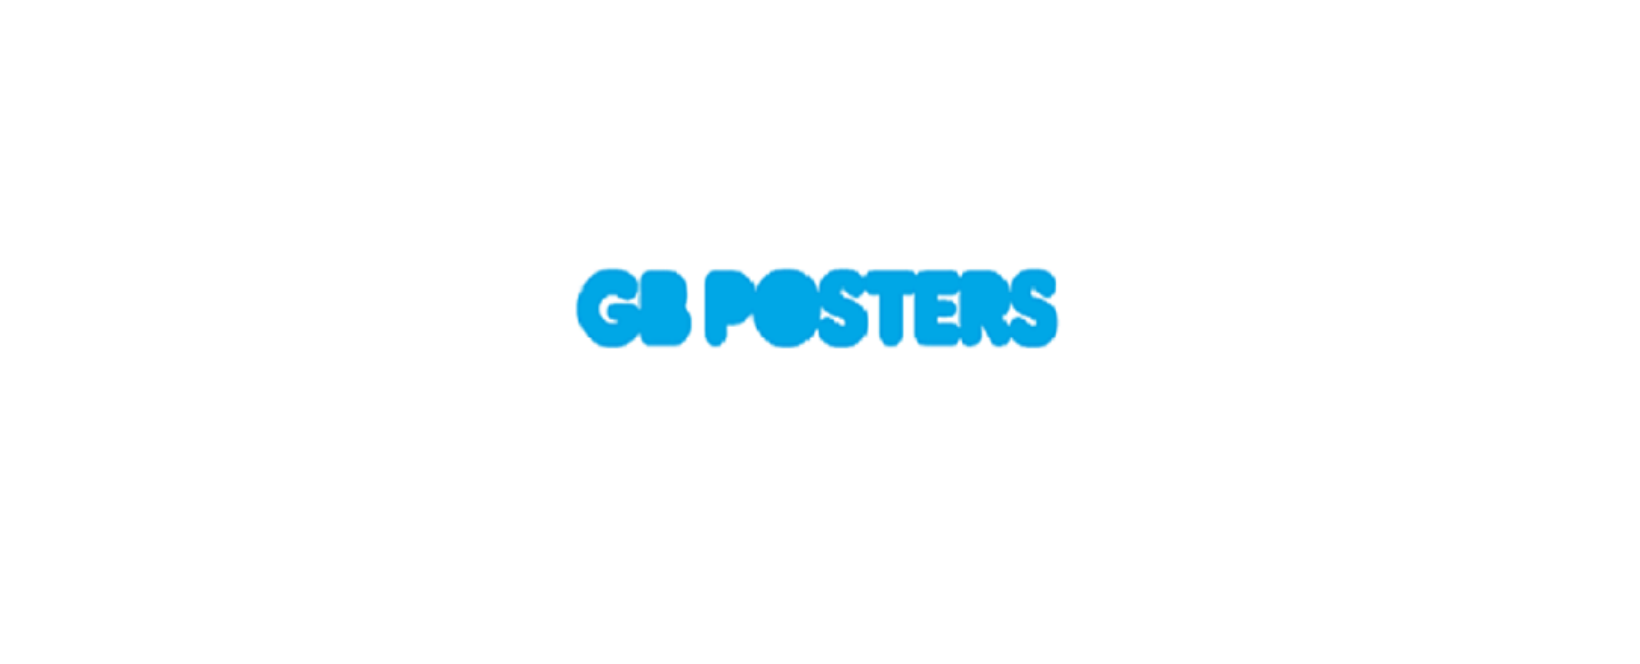 GB Posters Discount Code 2021